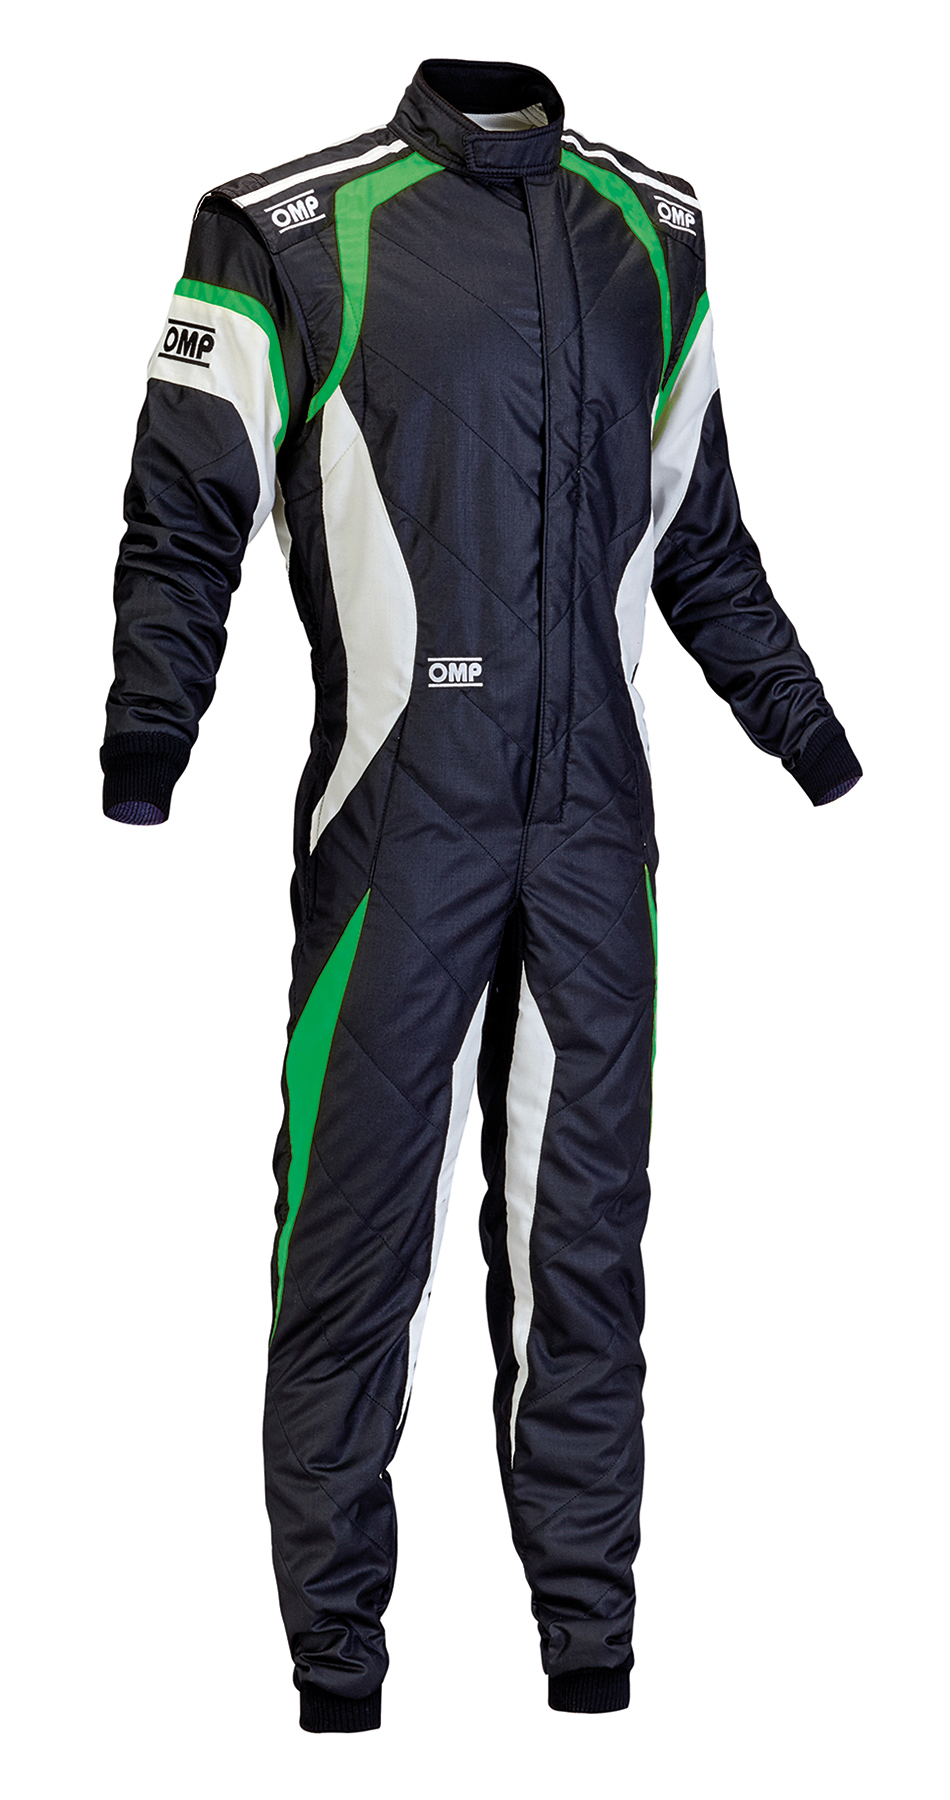 Racing Fire Suits >> OMP One Evo Race Suit | OMP IA01851270 Racing Overalls ...